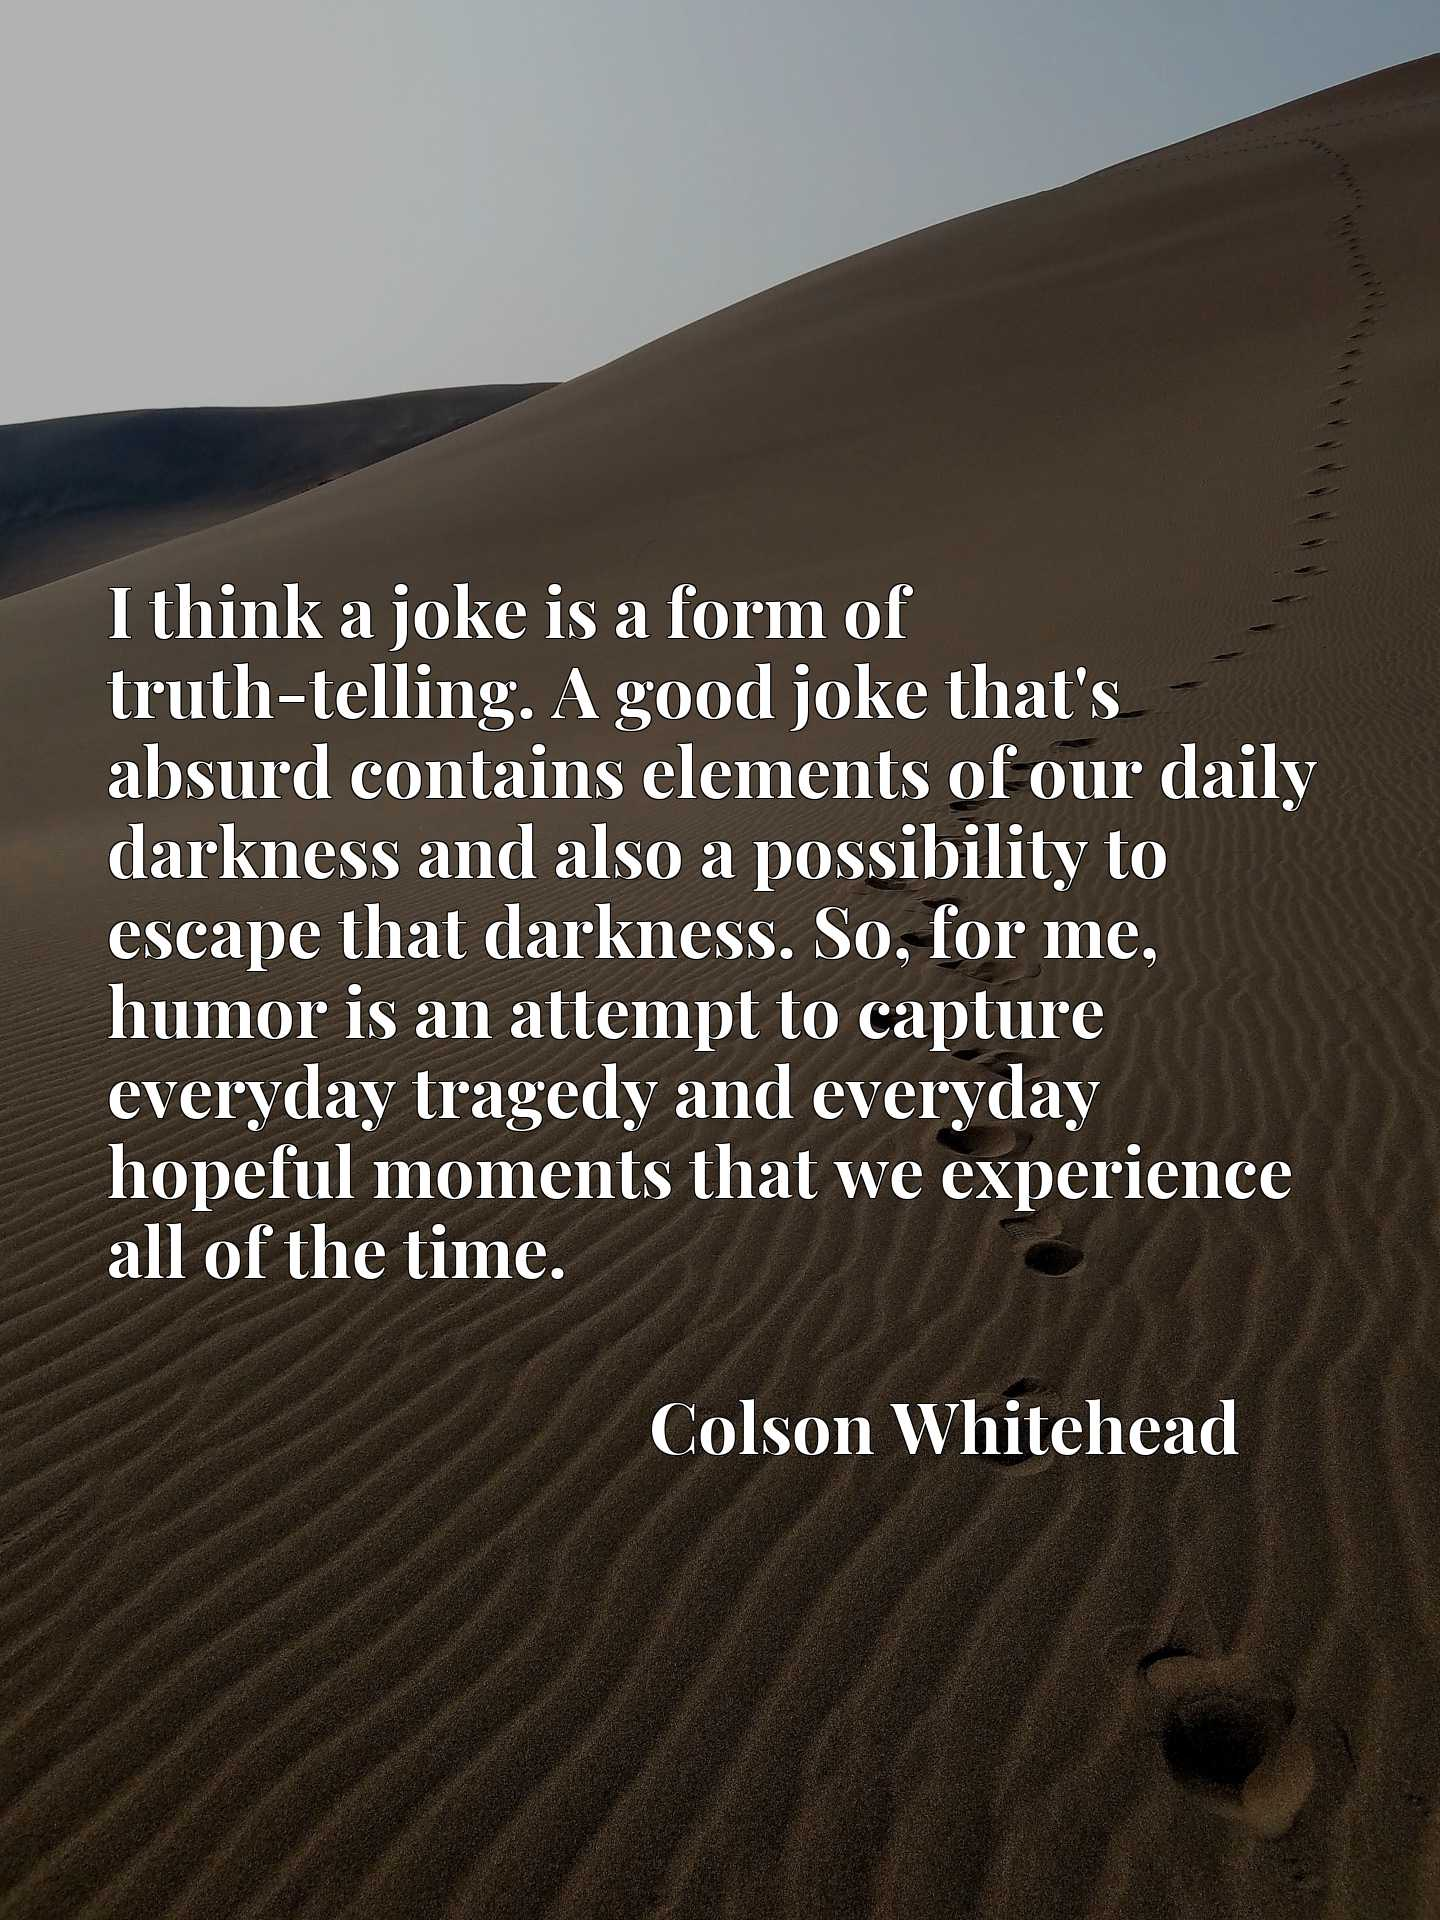 I think a joke is a form of truth-telling. A good joke that's absurd contains elements of our daily darkness and also a possibility to escape that darkness. So, for me, humor is an attempt to capture everyday tragedy and everyday hopeful moments that we experience all of the time.